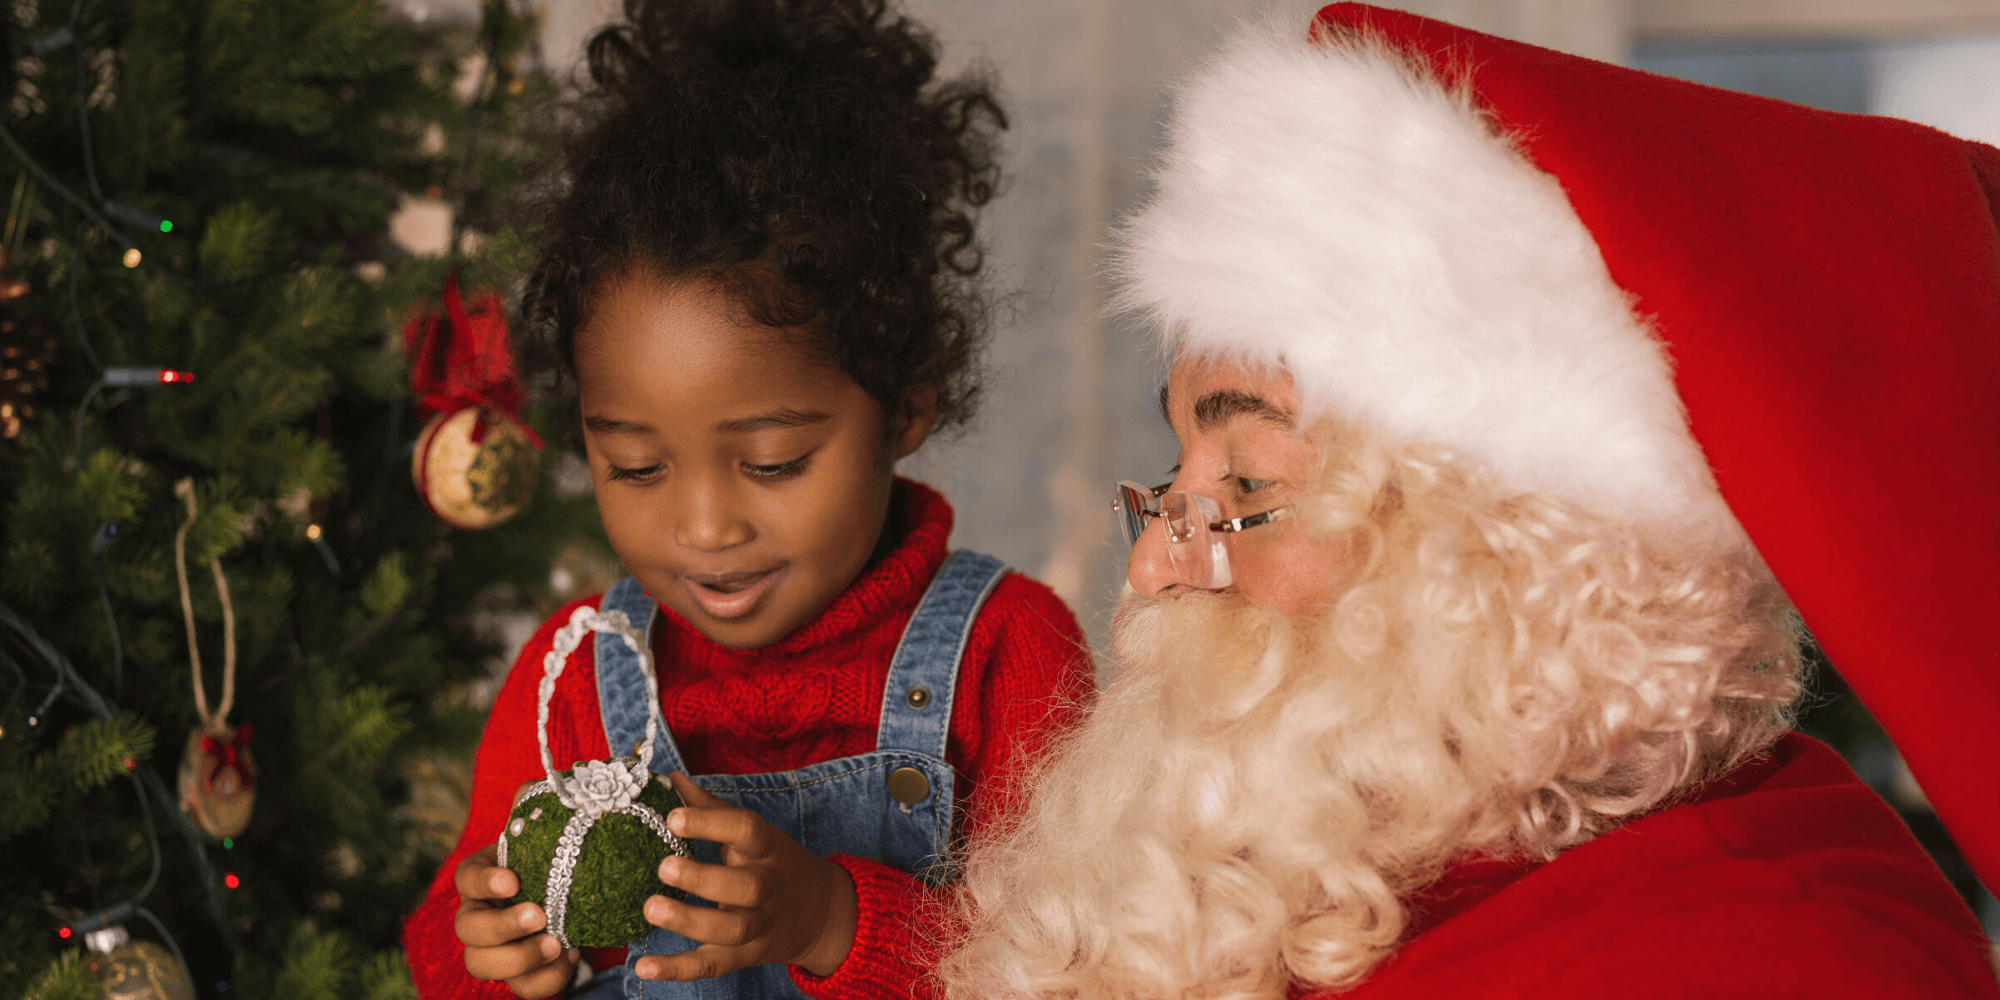 Little girl with Santa on Christmas Day